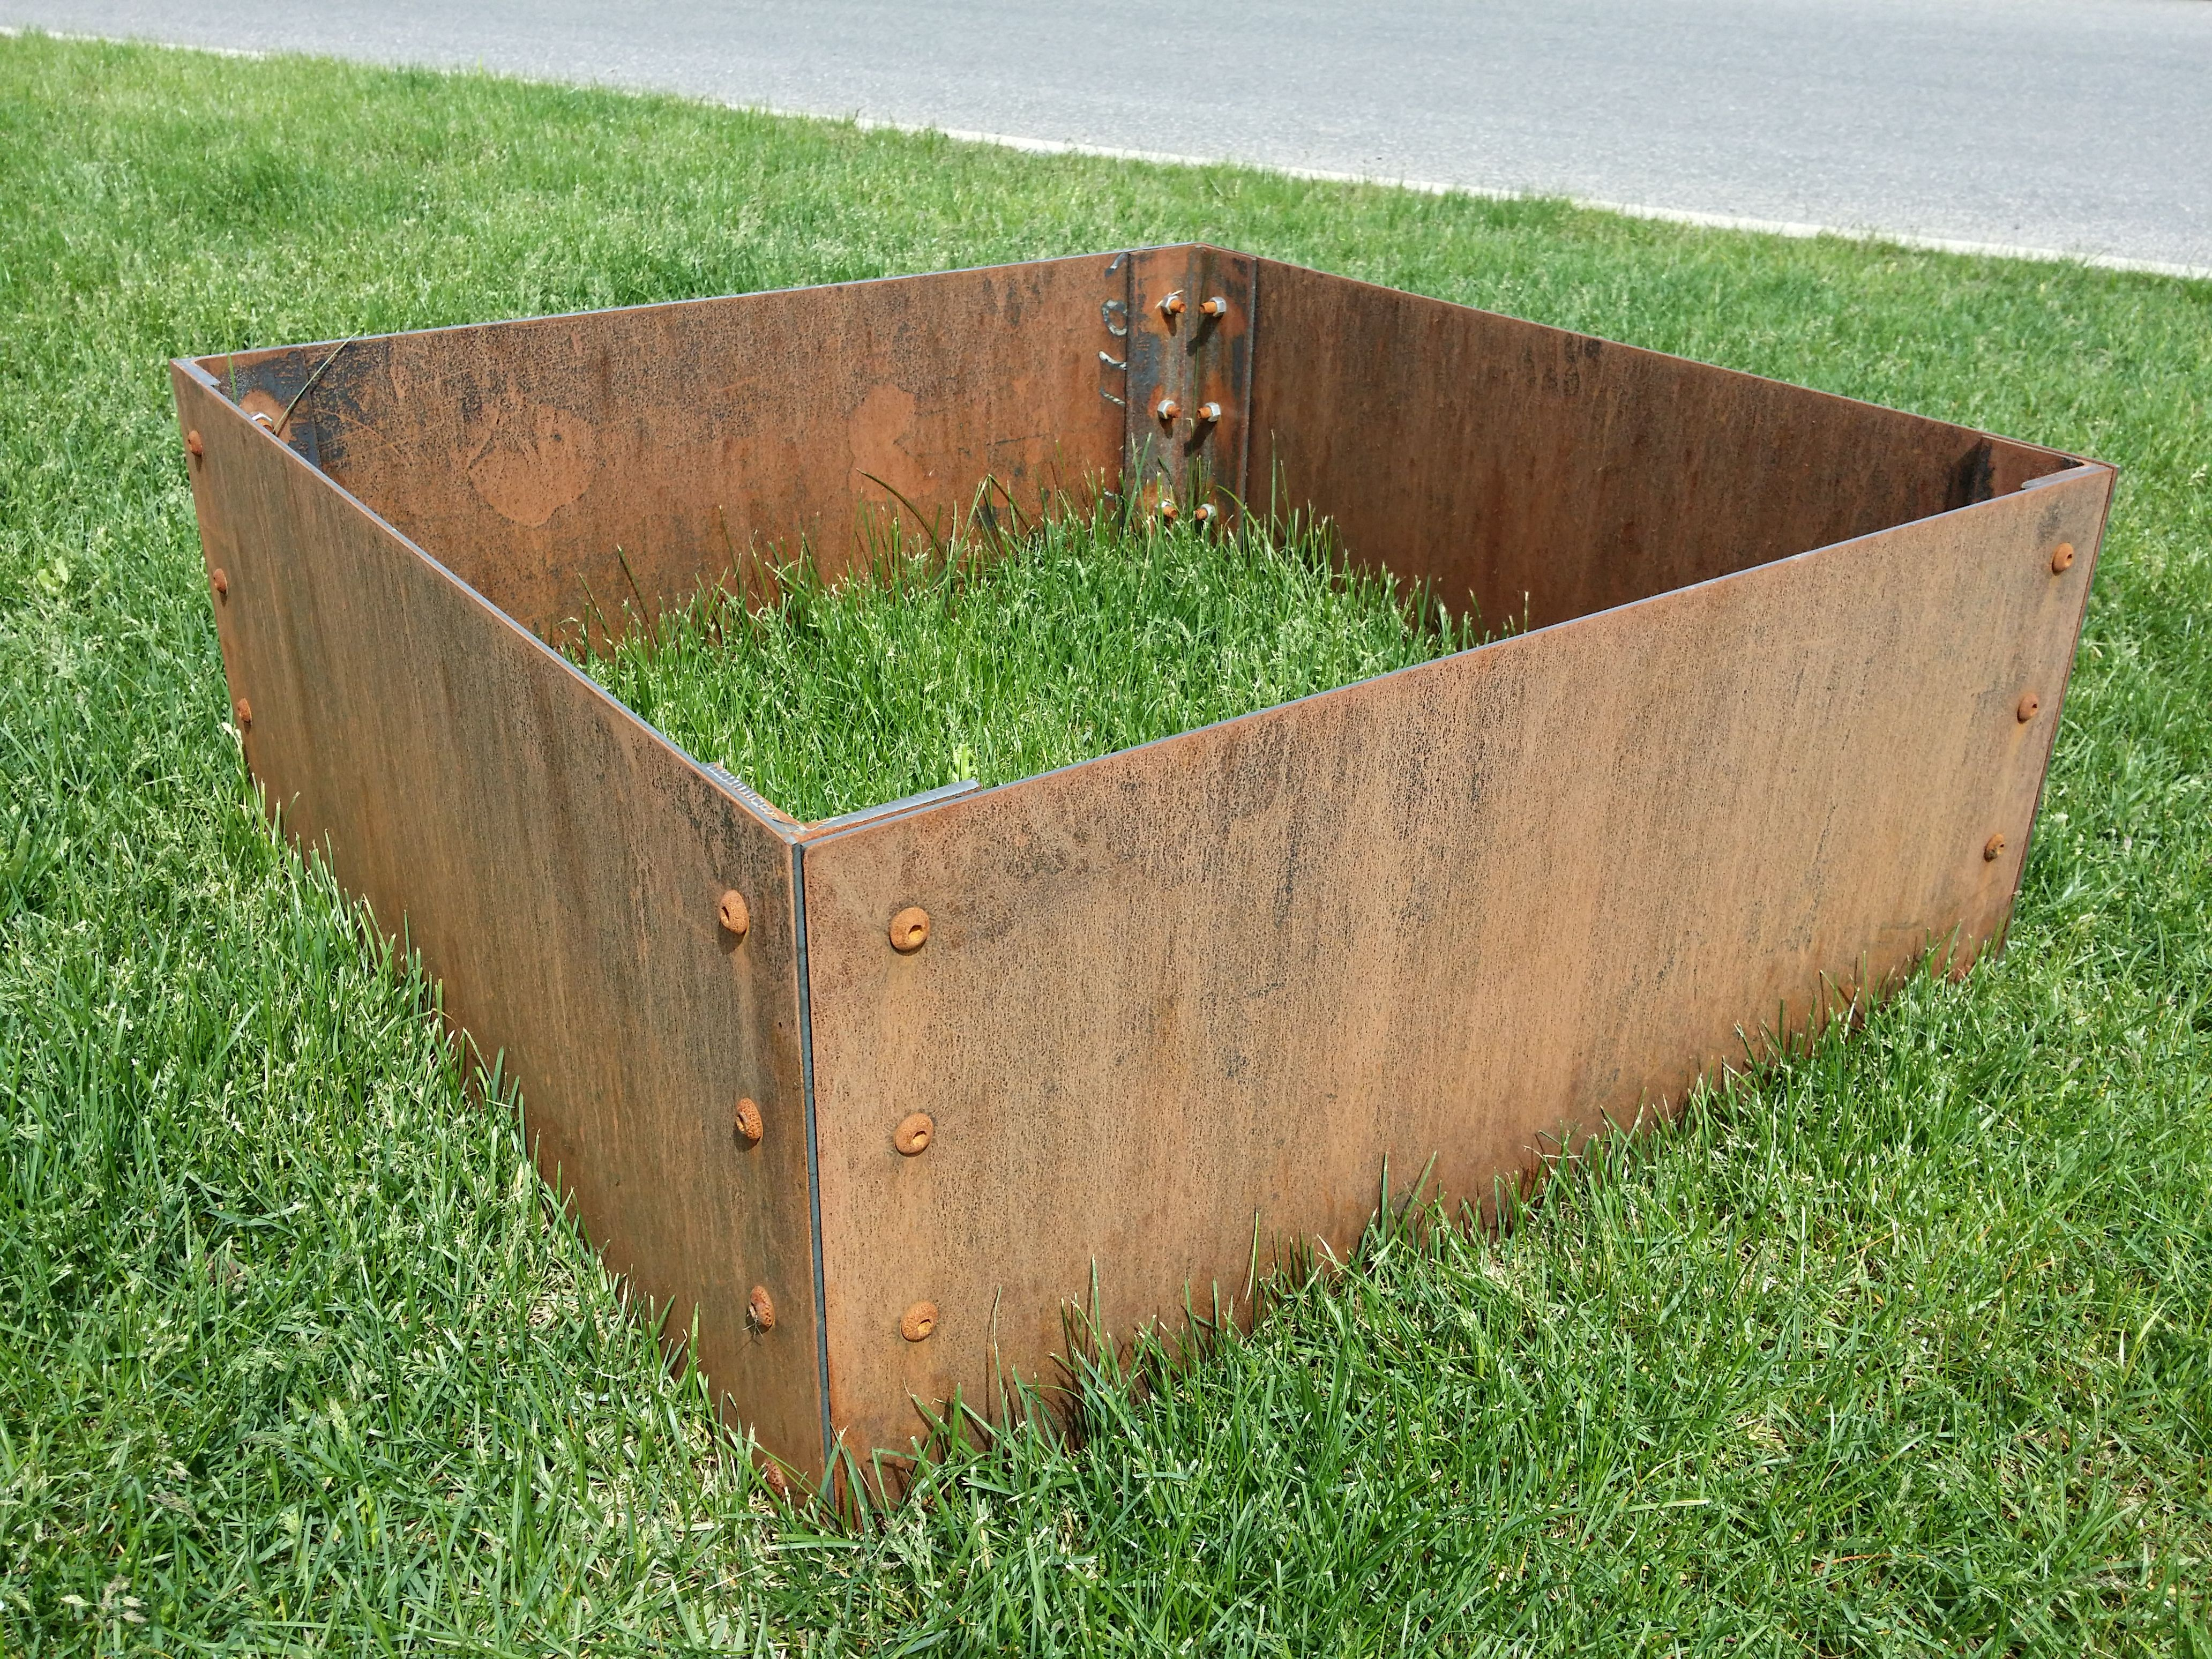 Metal Planter Boxes Small Corten Steel Planter Box With Rusty Patina Metal